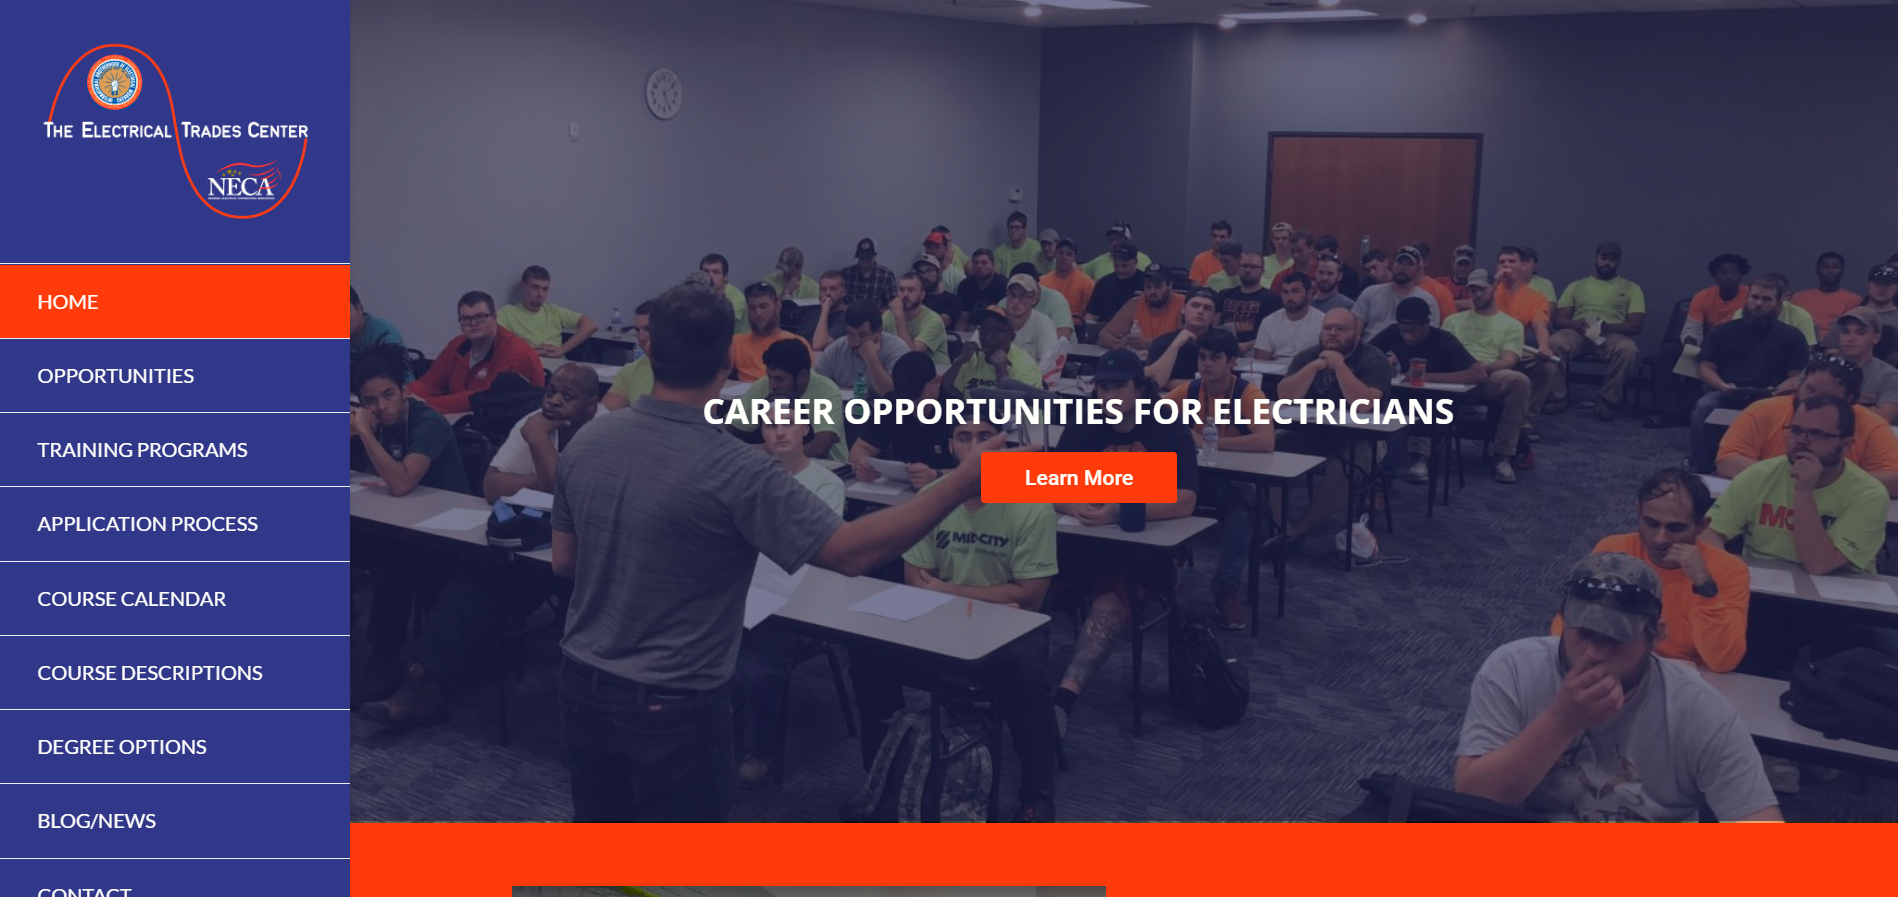 the electrical trades center